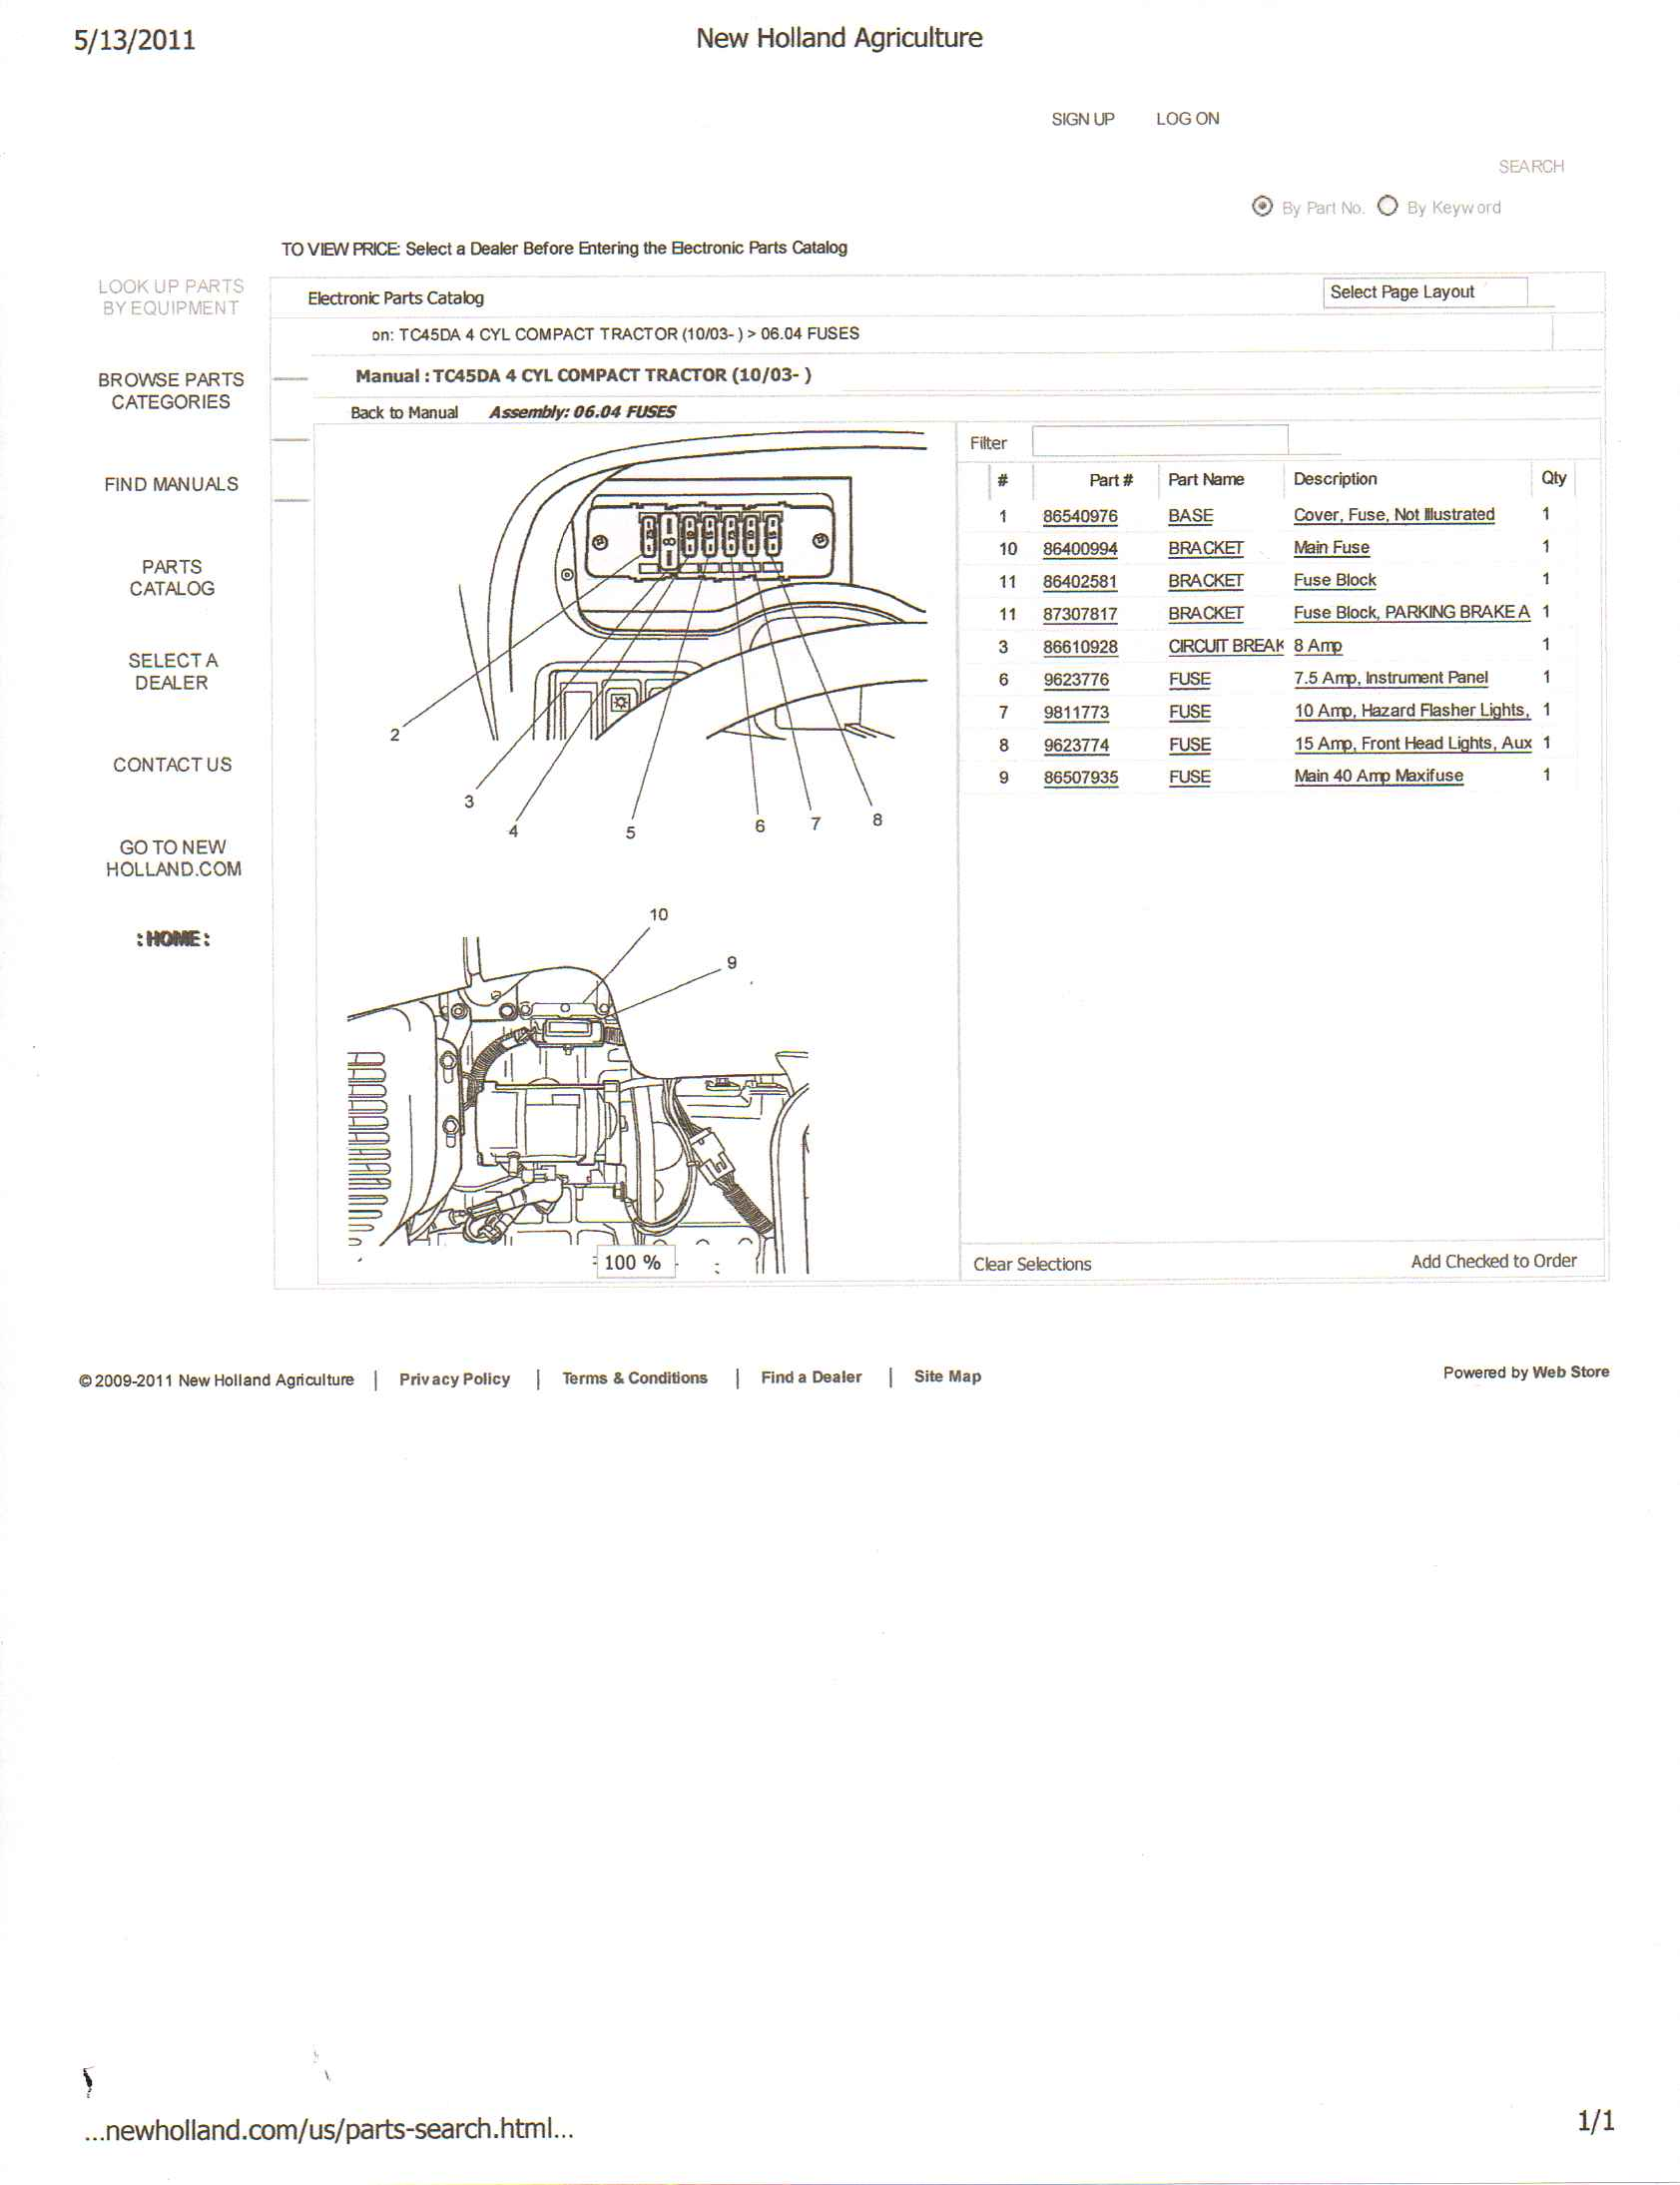 New Holland 850 Wiring Diagram Great Design Of Ford 3230 Tractor Also Polaris Sportsman Diagrams On Ts110